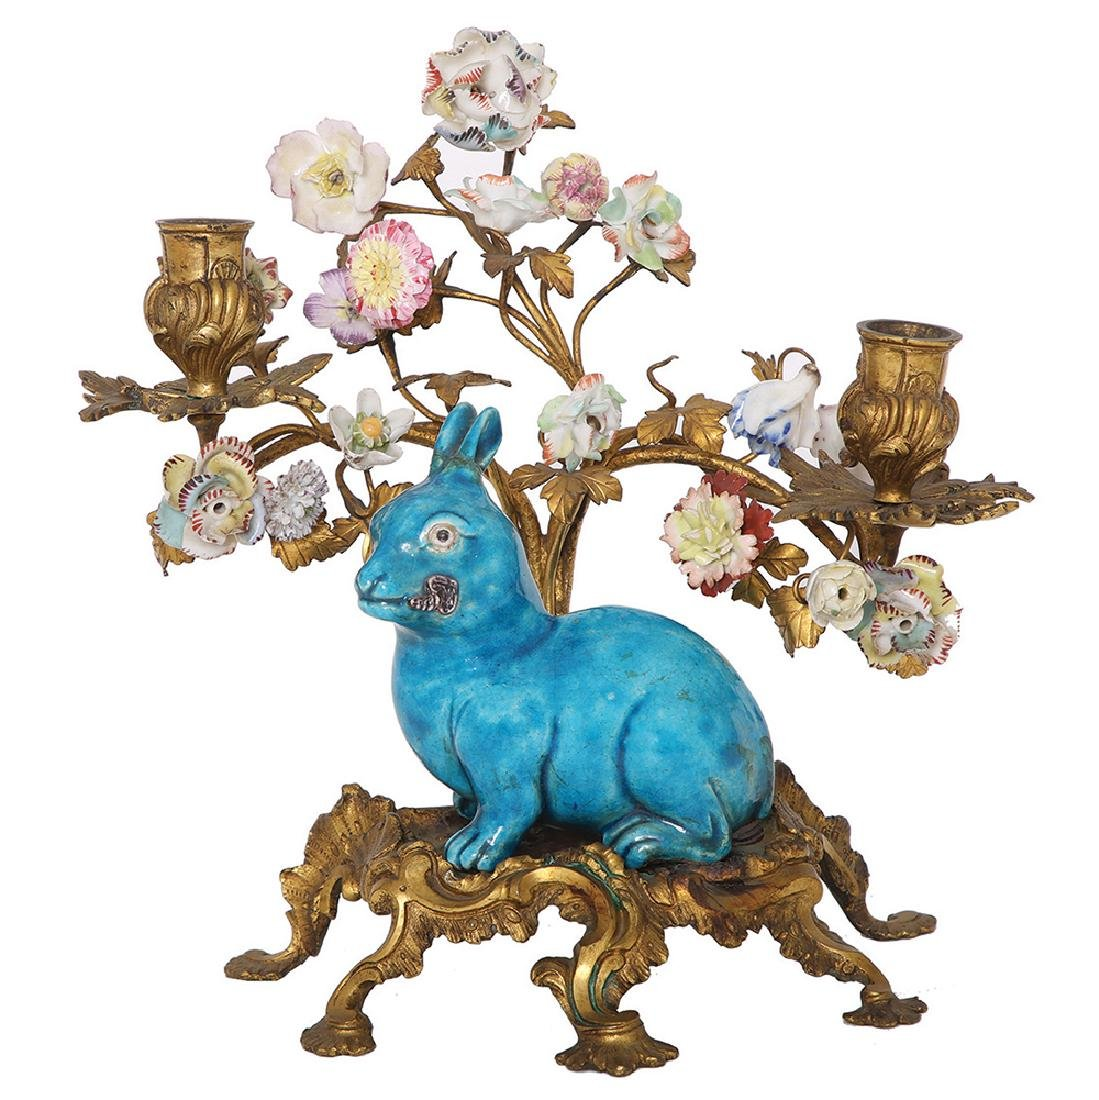 A FRENCH GILT-BRONZE PORCELAIN MOUNTED LOUIS XV STYLE